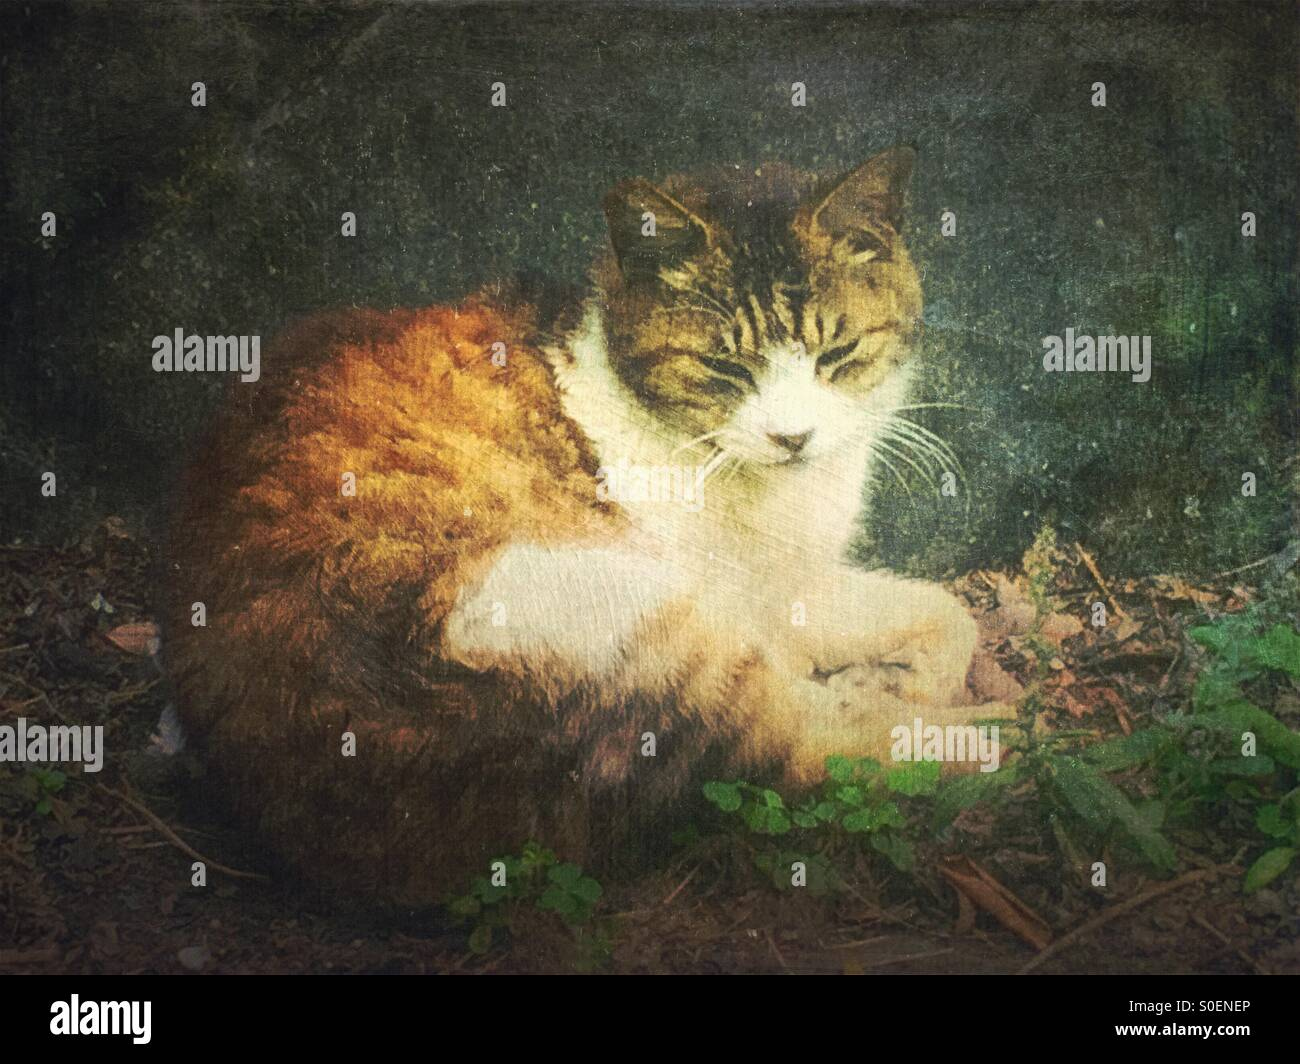 White and brown alley cat sitting in front of a rock and looking sleepy. Vintage painterly texture overlay.Stock Photo